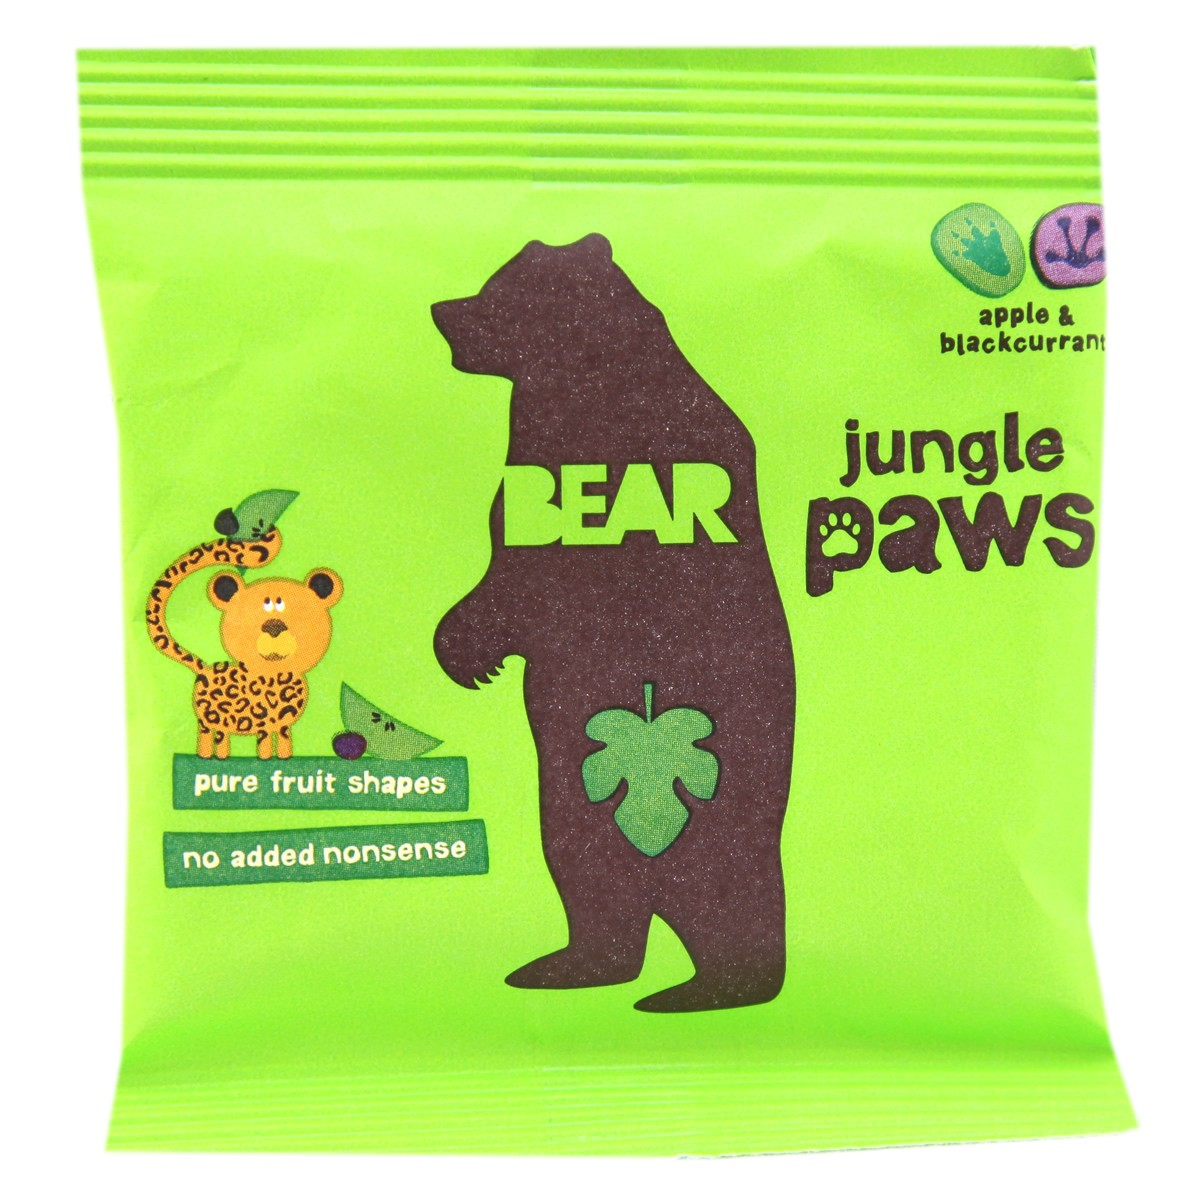 Bear Jungle Paws - Apple & Blackcurrant